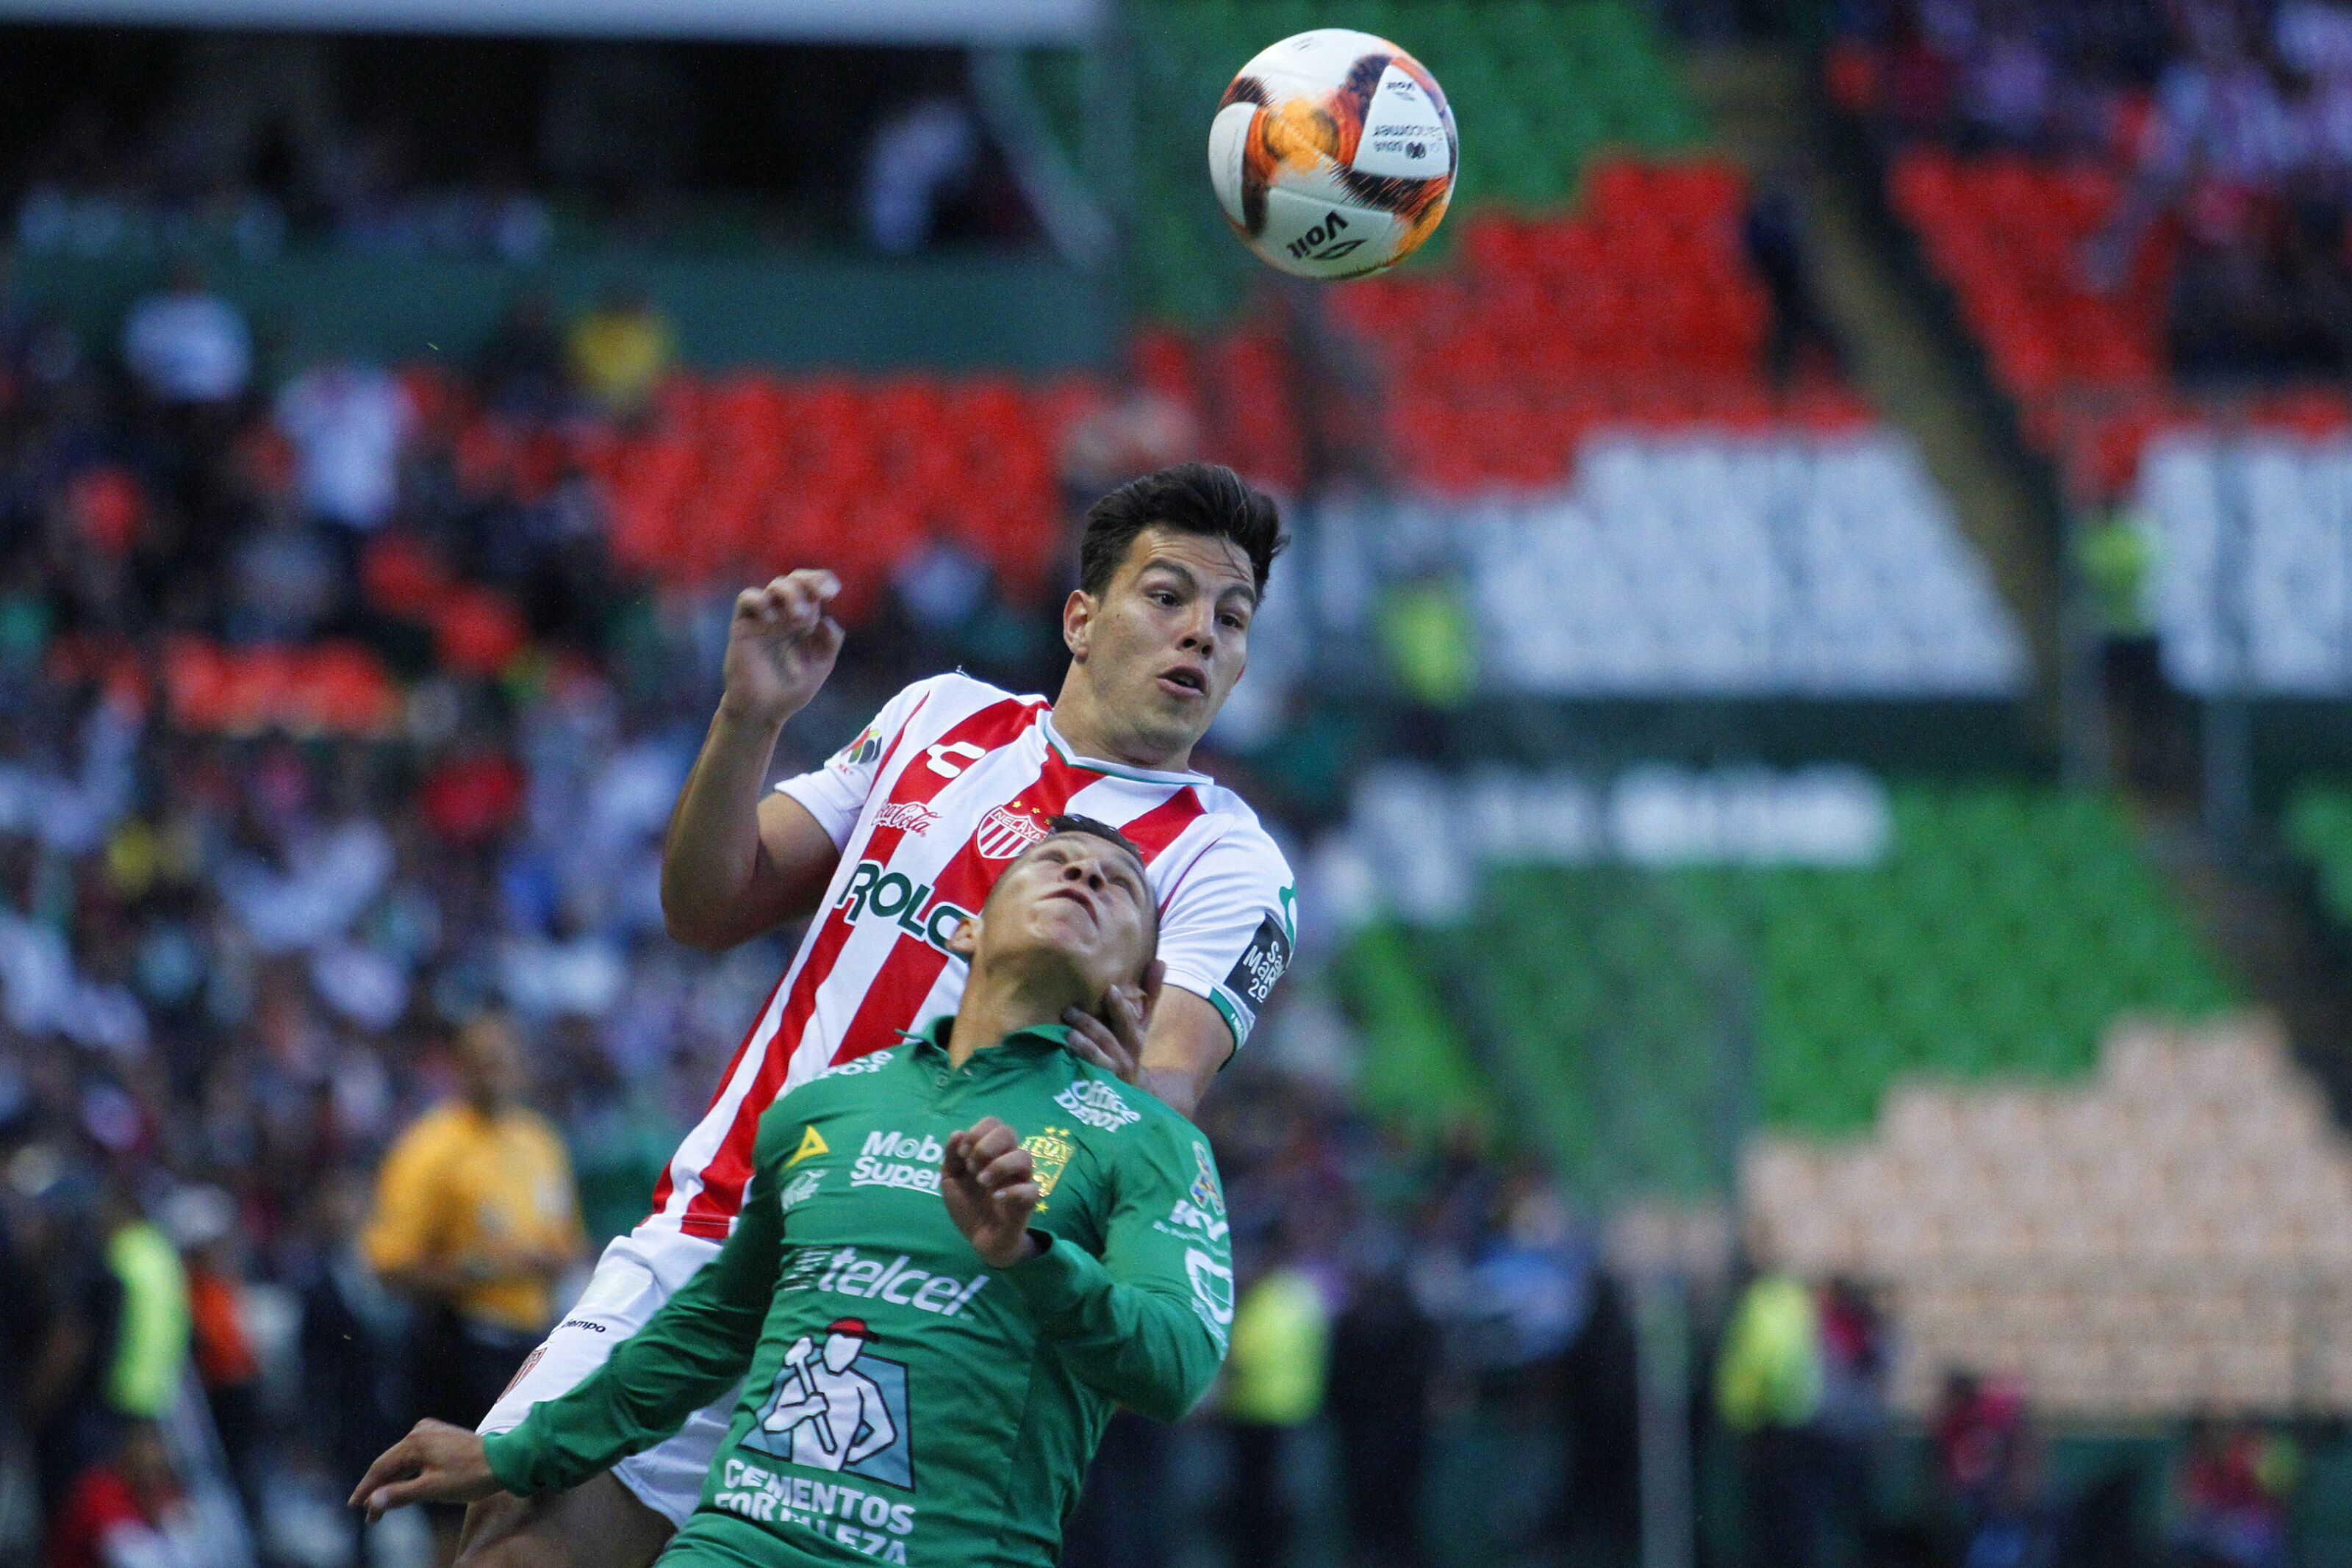 Liga MX: Matchday 10 offers viewers three Top 7 clashes